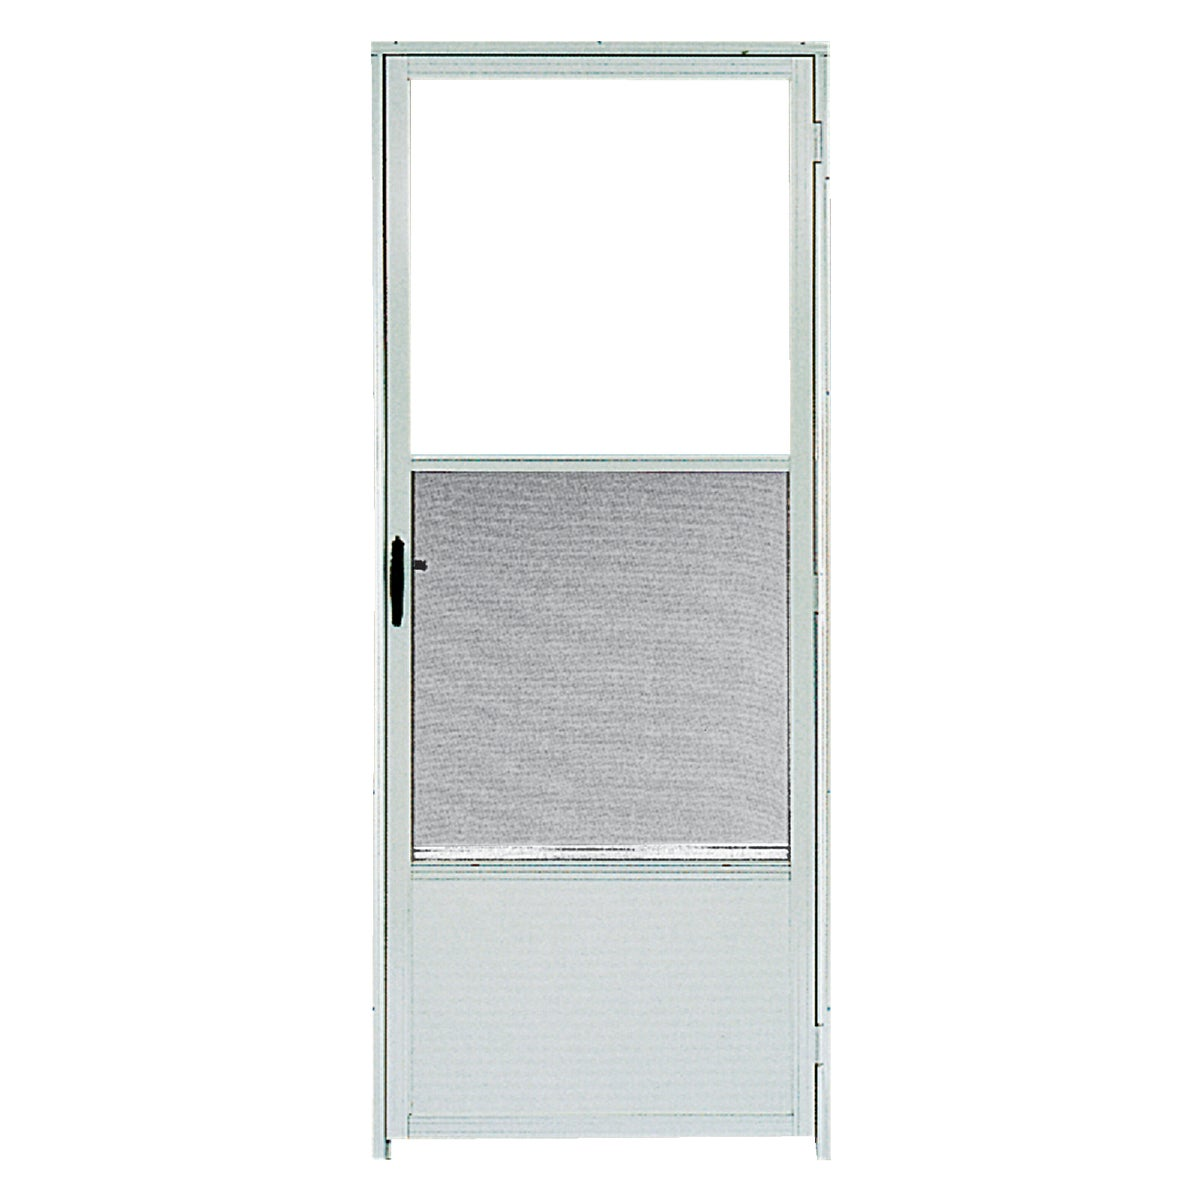 563 3068 LH WHT DOOR - F14570 by Croft Llc